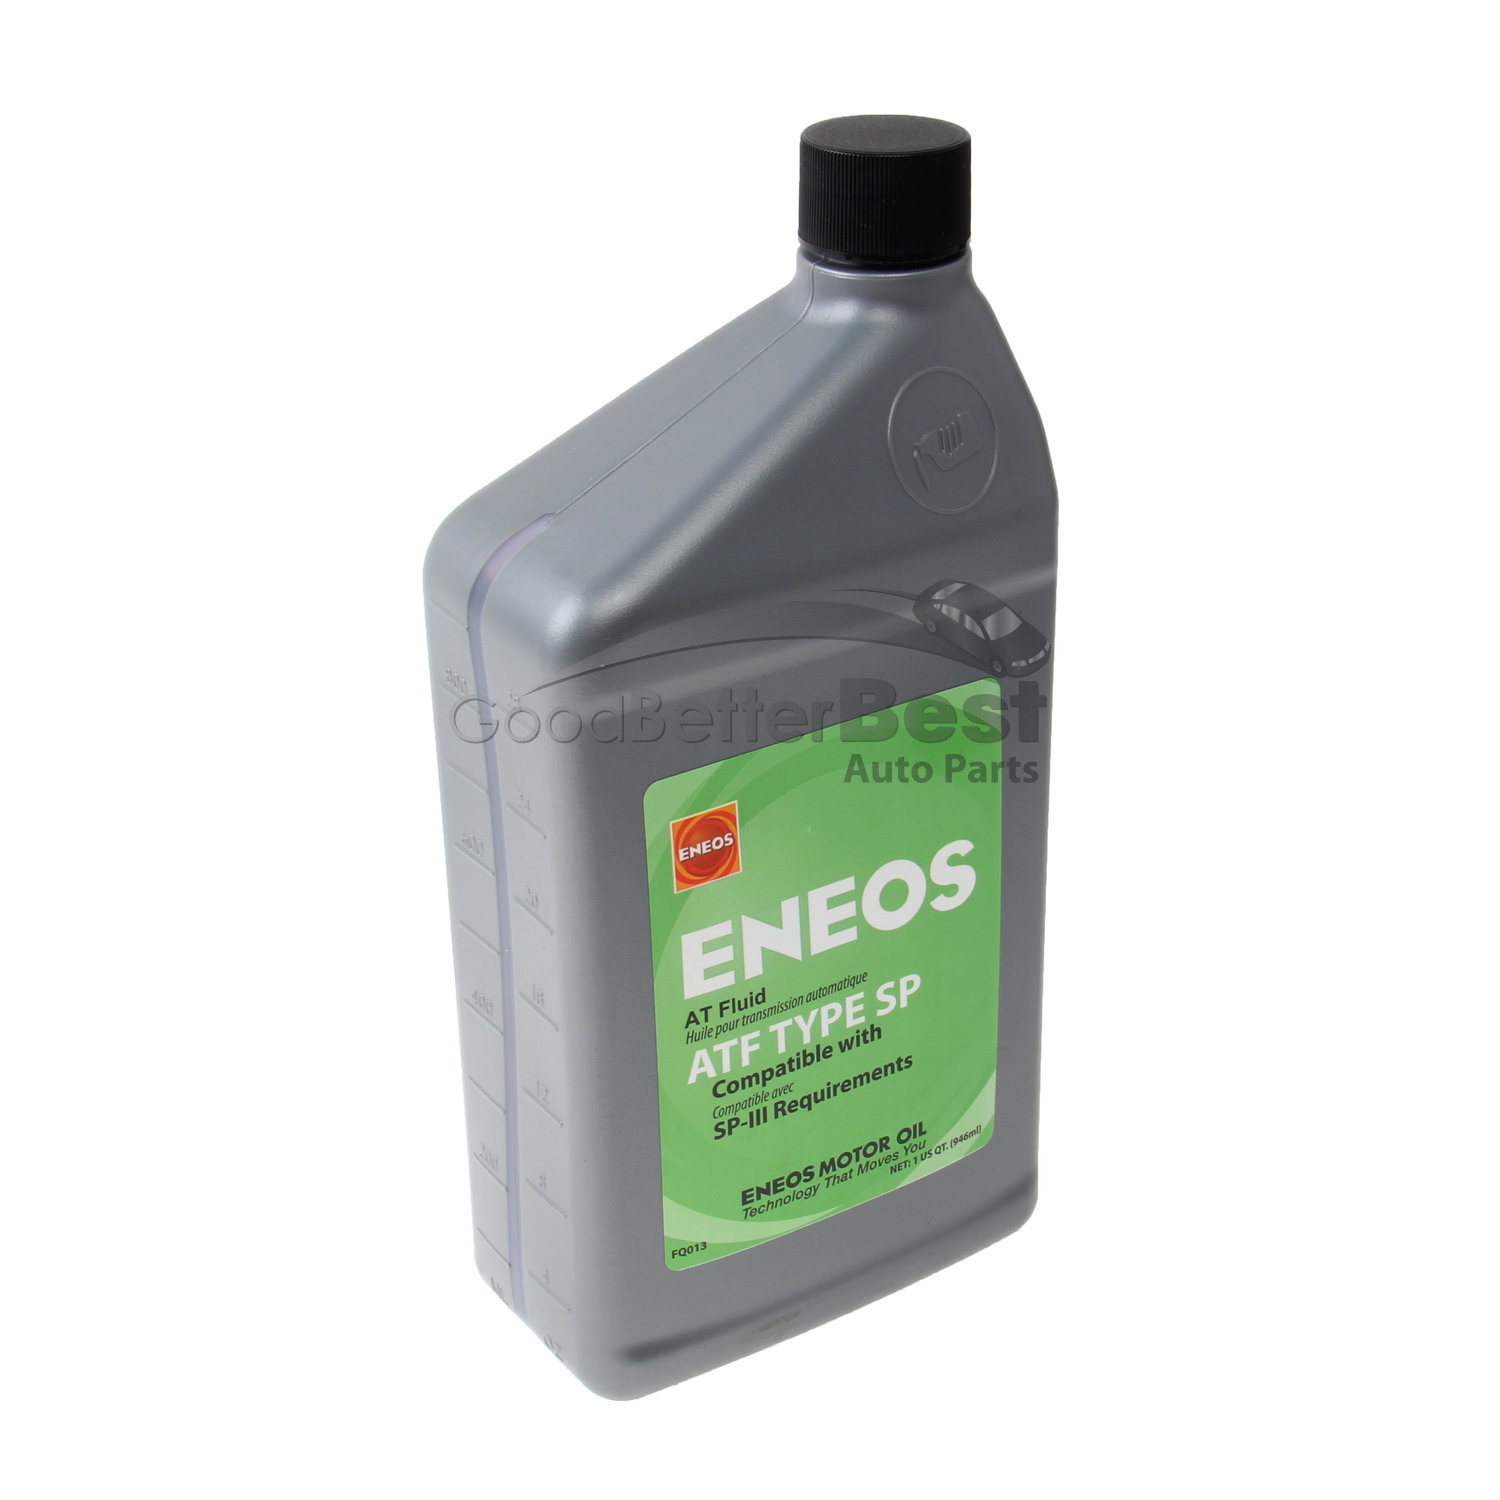 Details about One New ENEOS Automatic Transmission Fluid 3110300 for  Hyundai Kia Mitsubishi